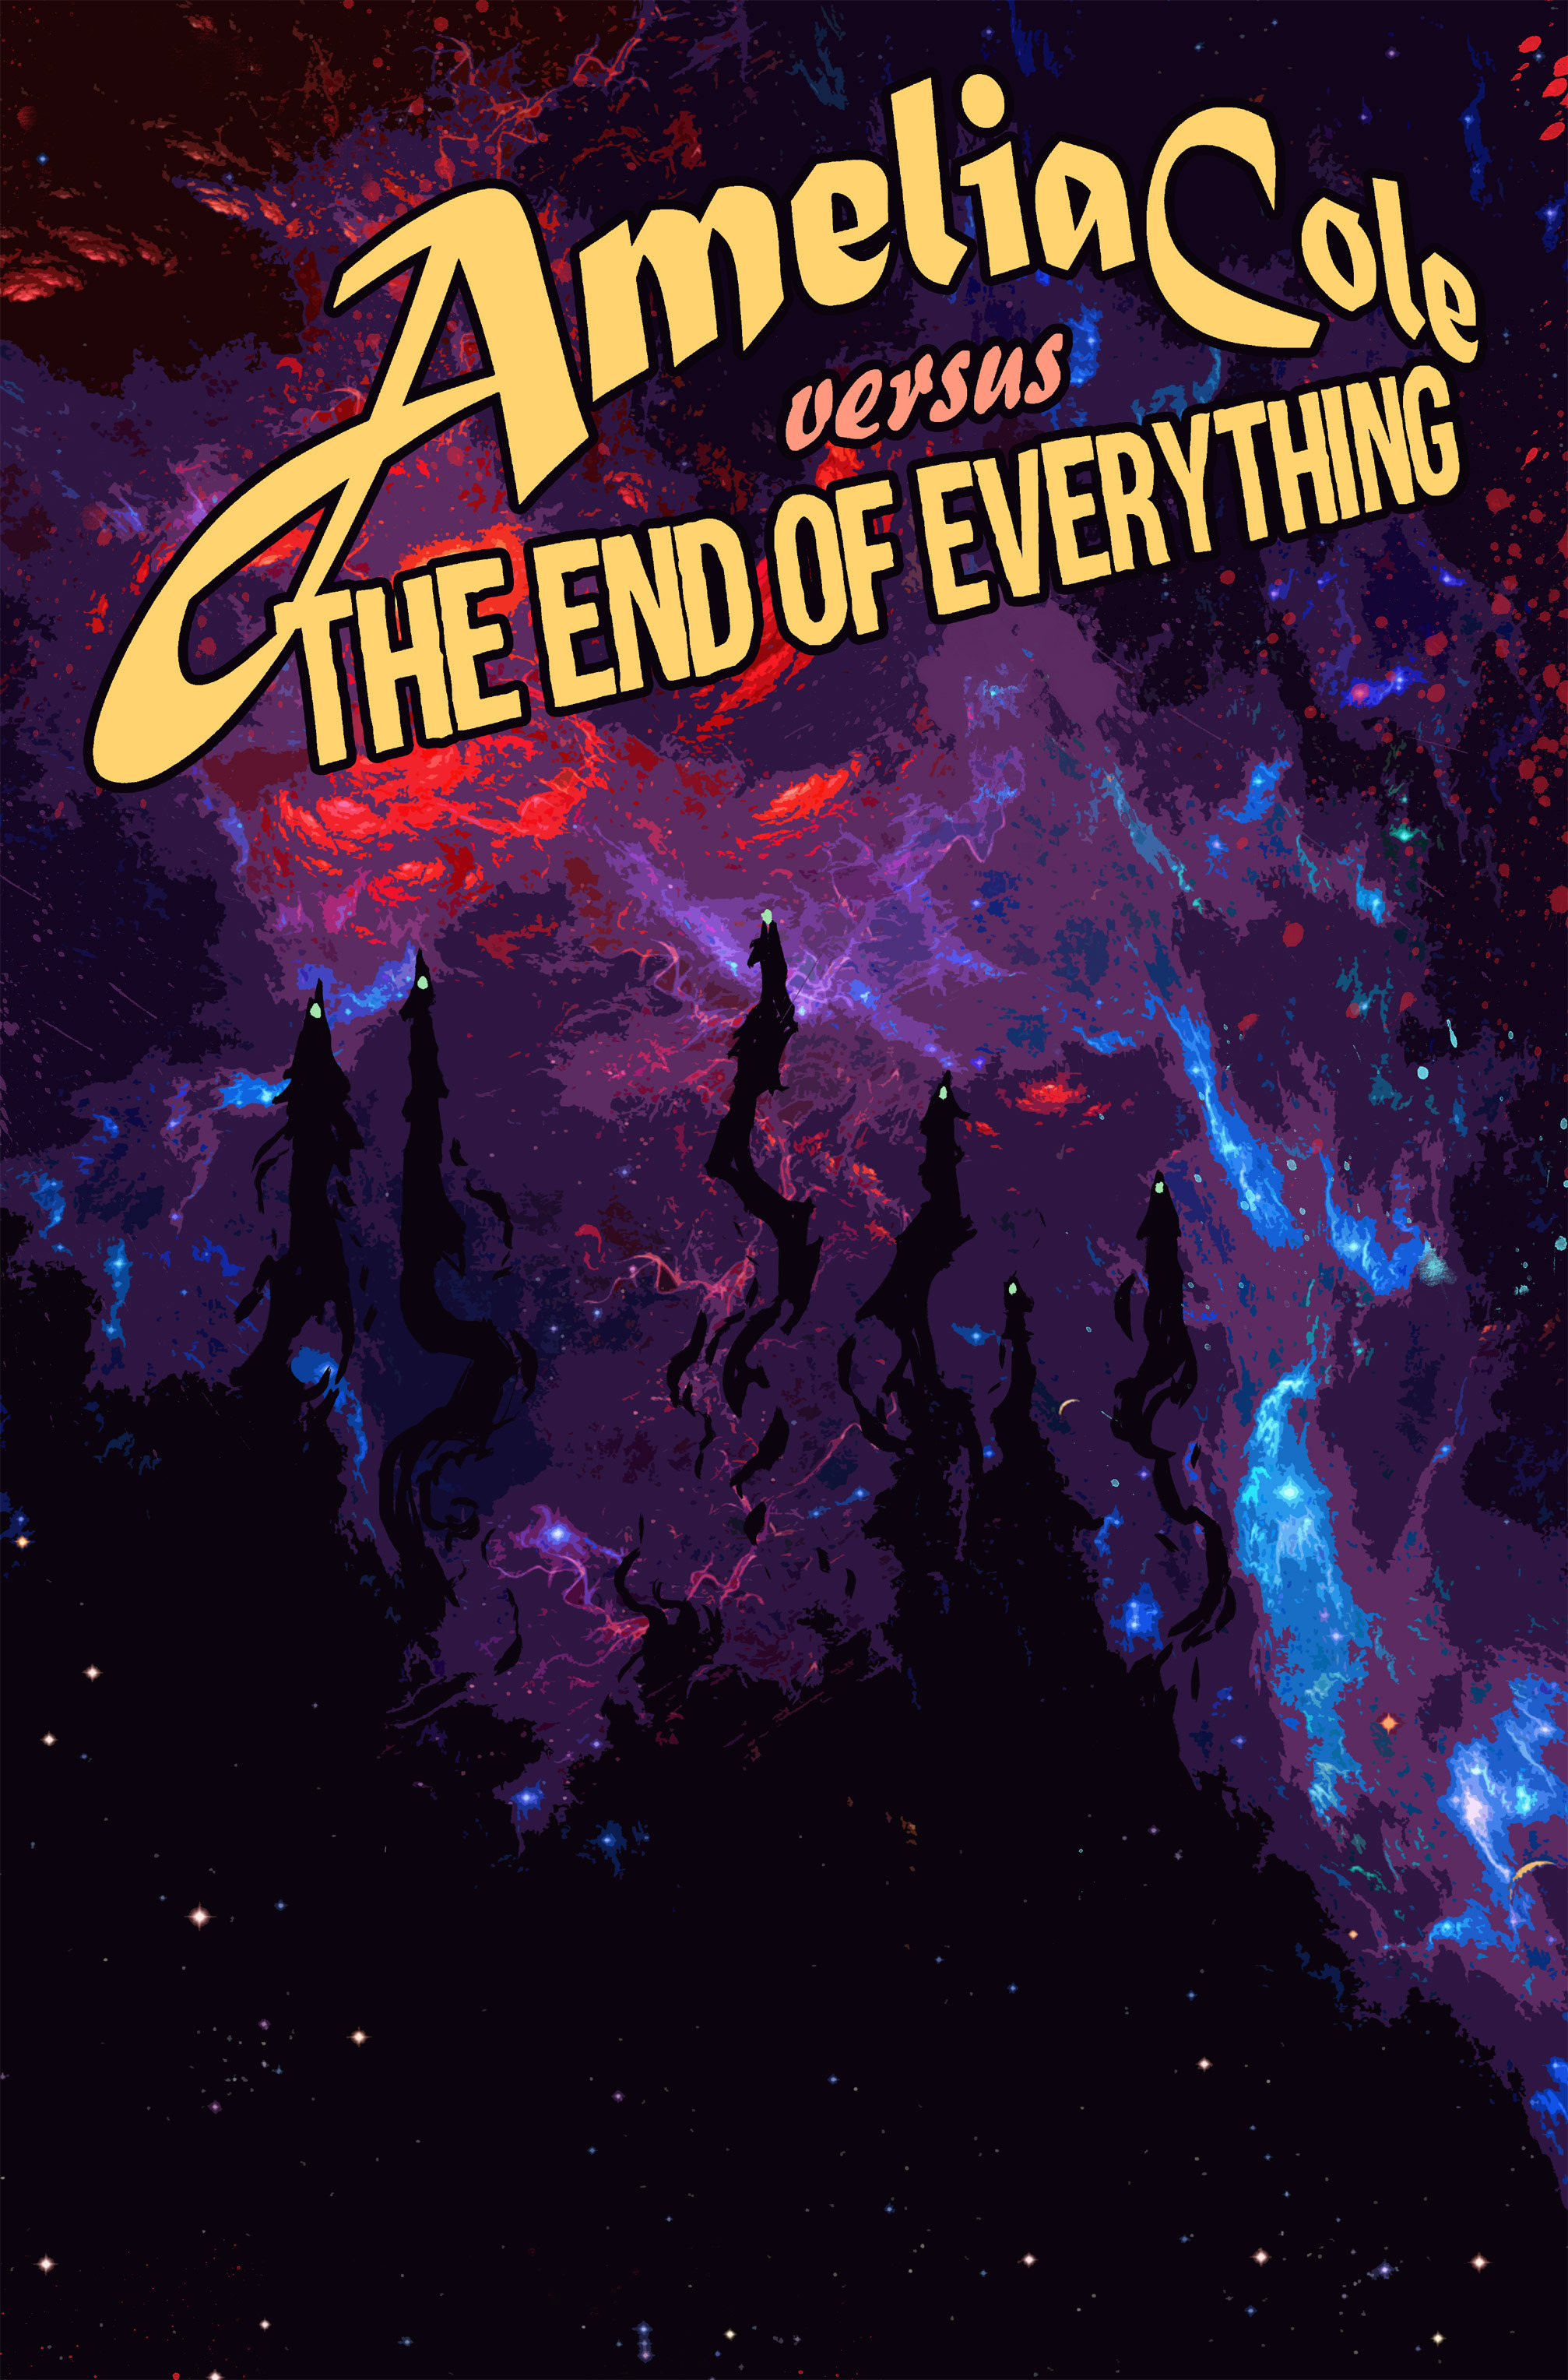 Read online Amelia Cole Versus The End of Everything comic -  Issue #28 - 1